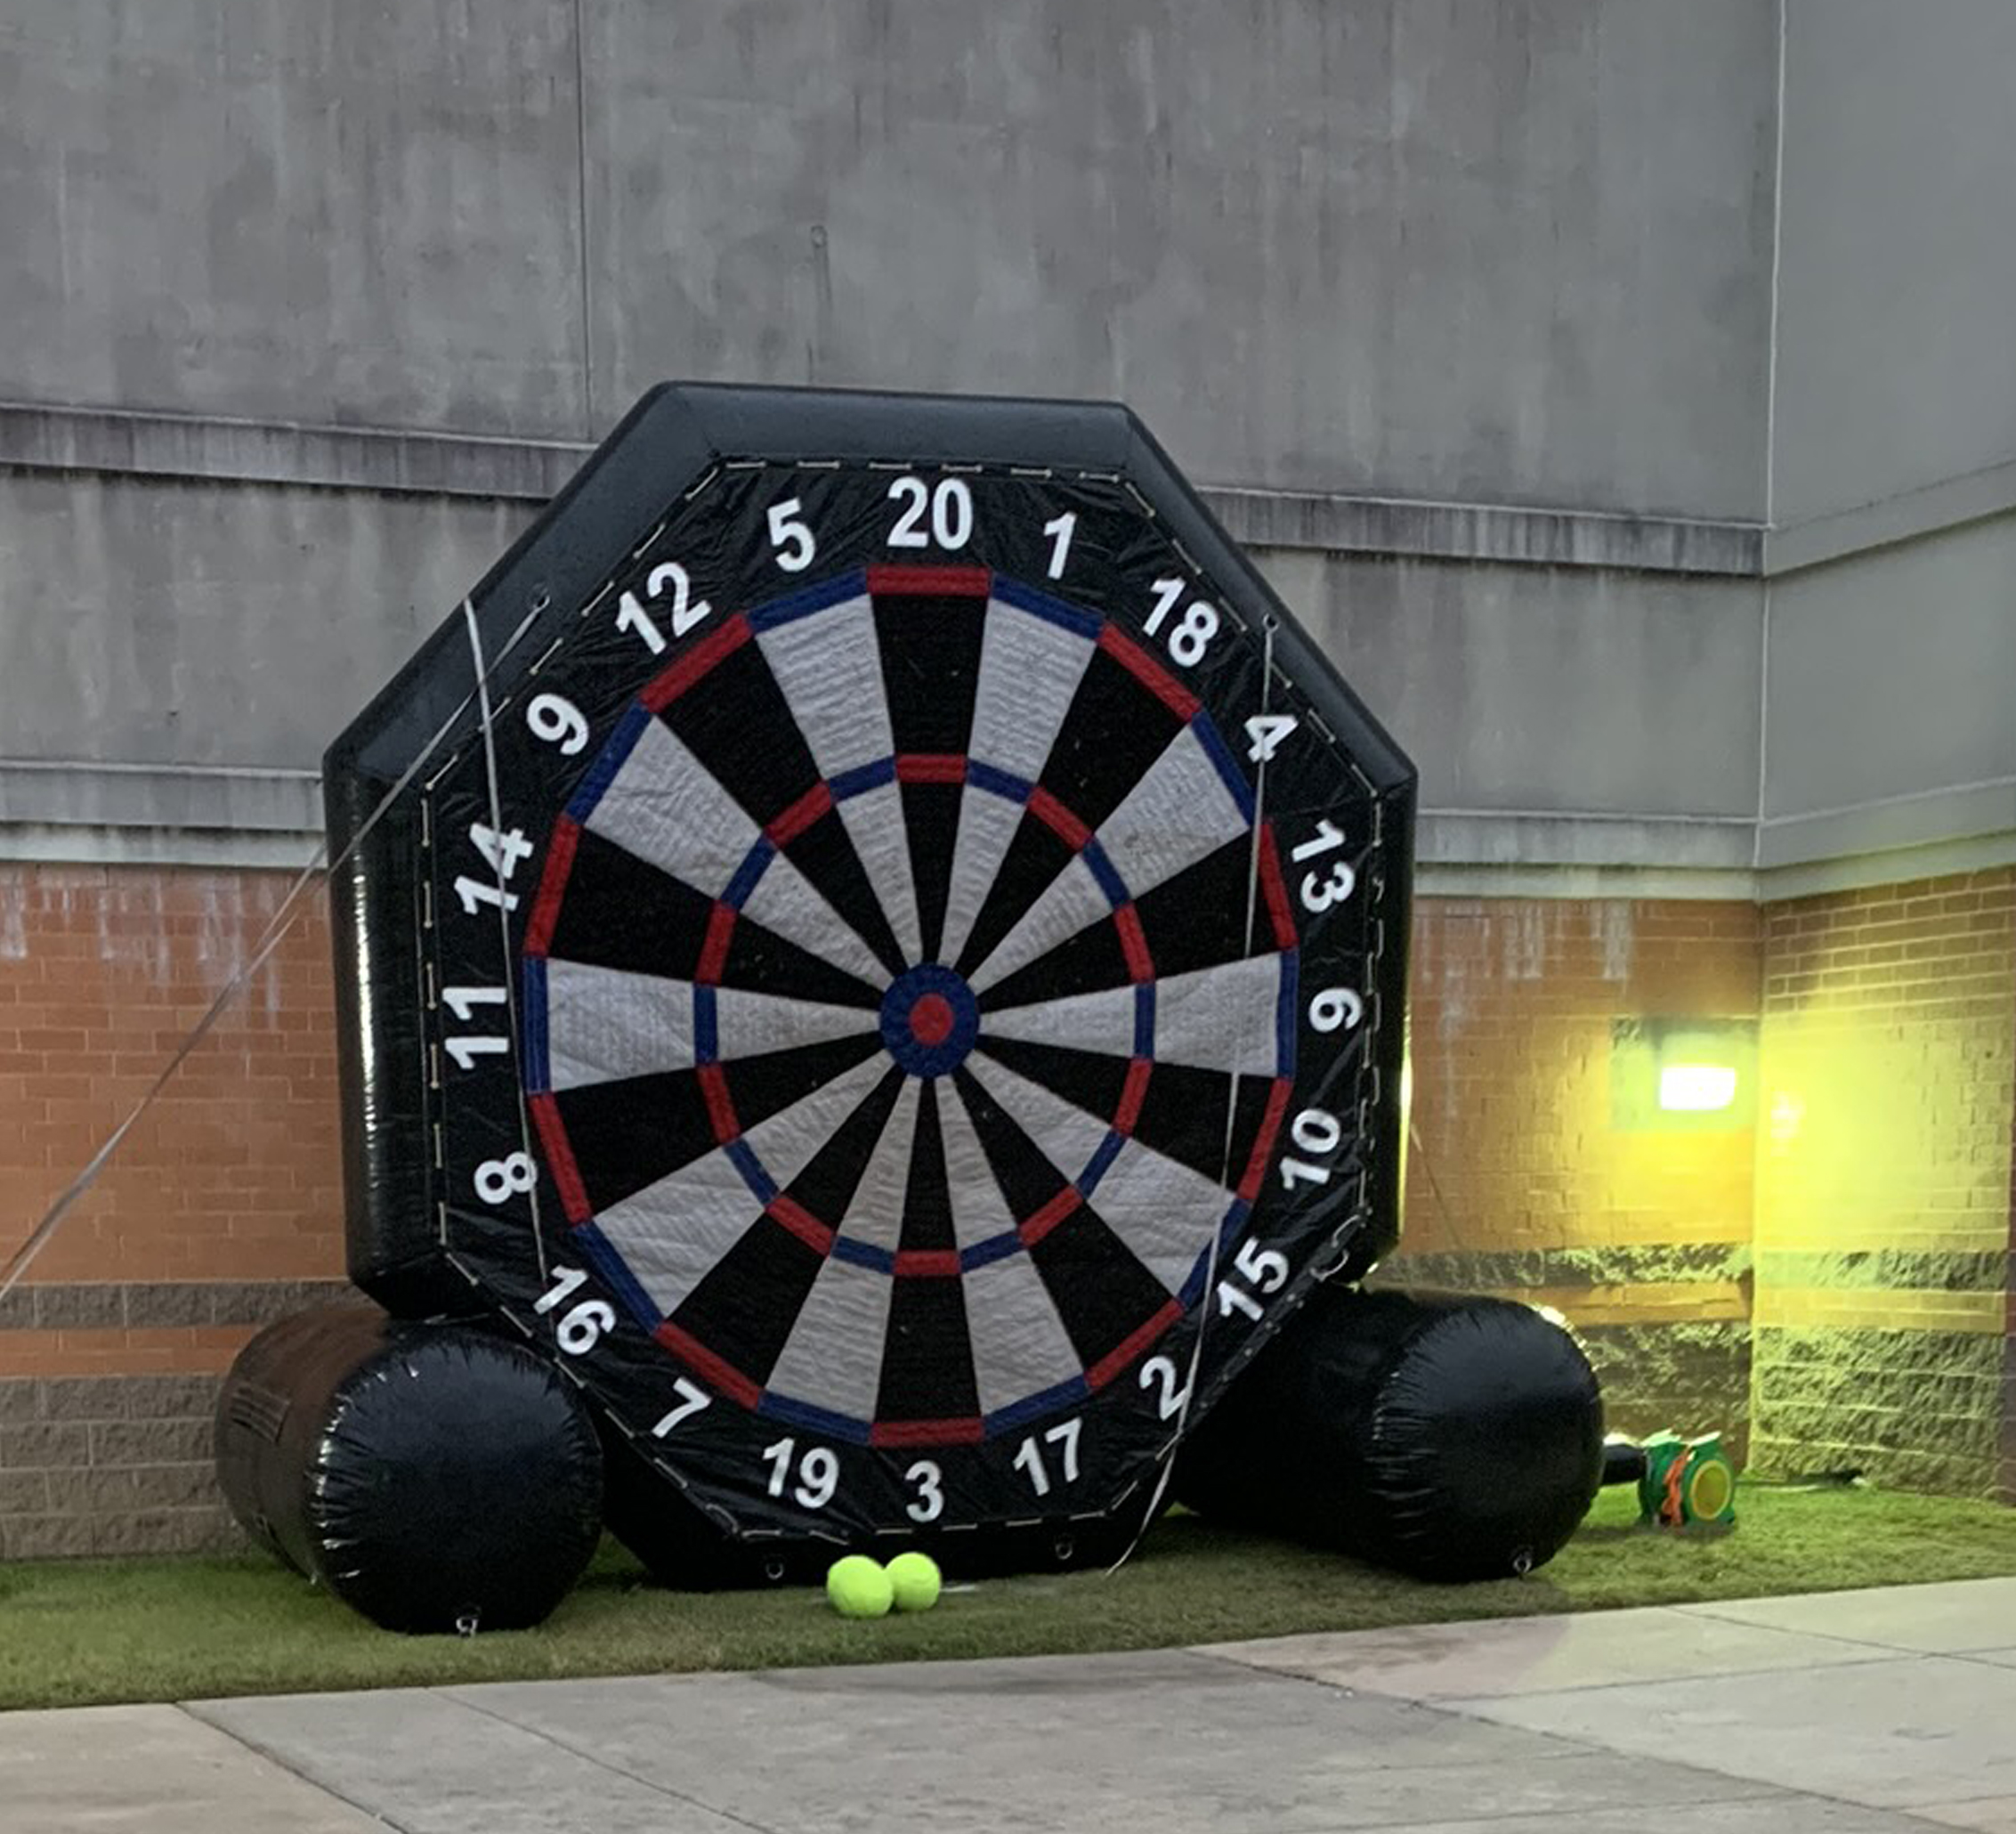 soccer darts inflatable rental chattanooga